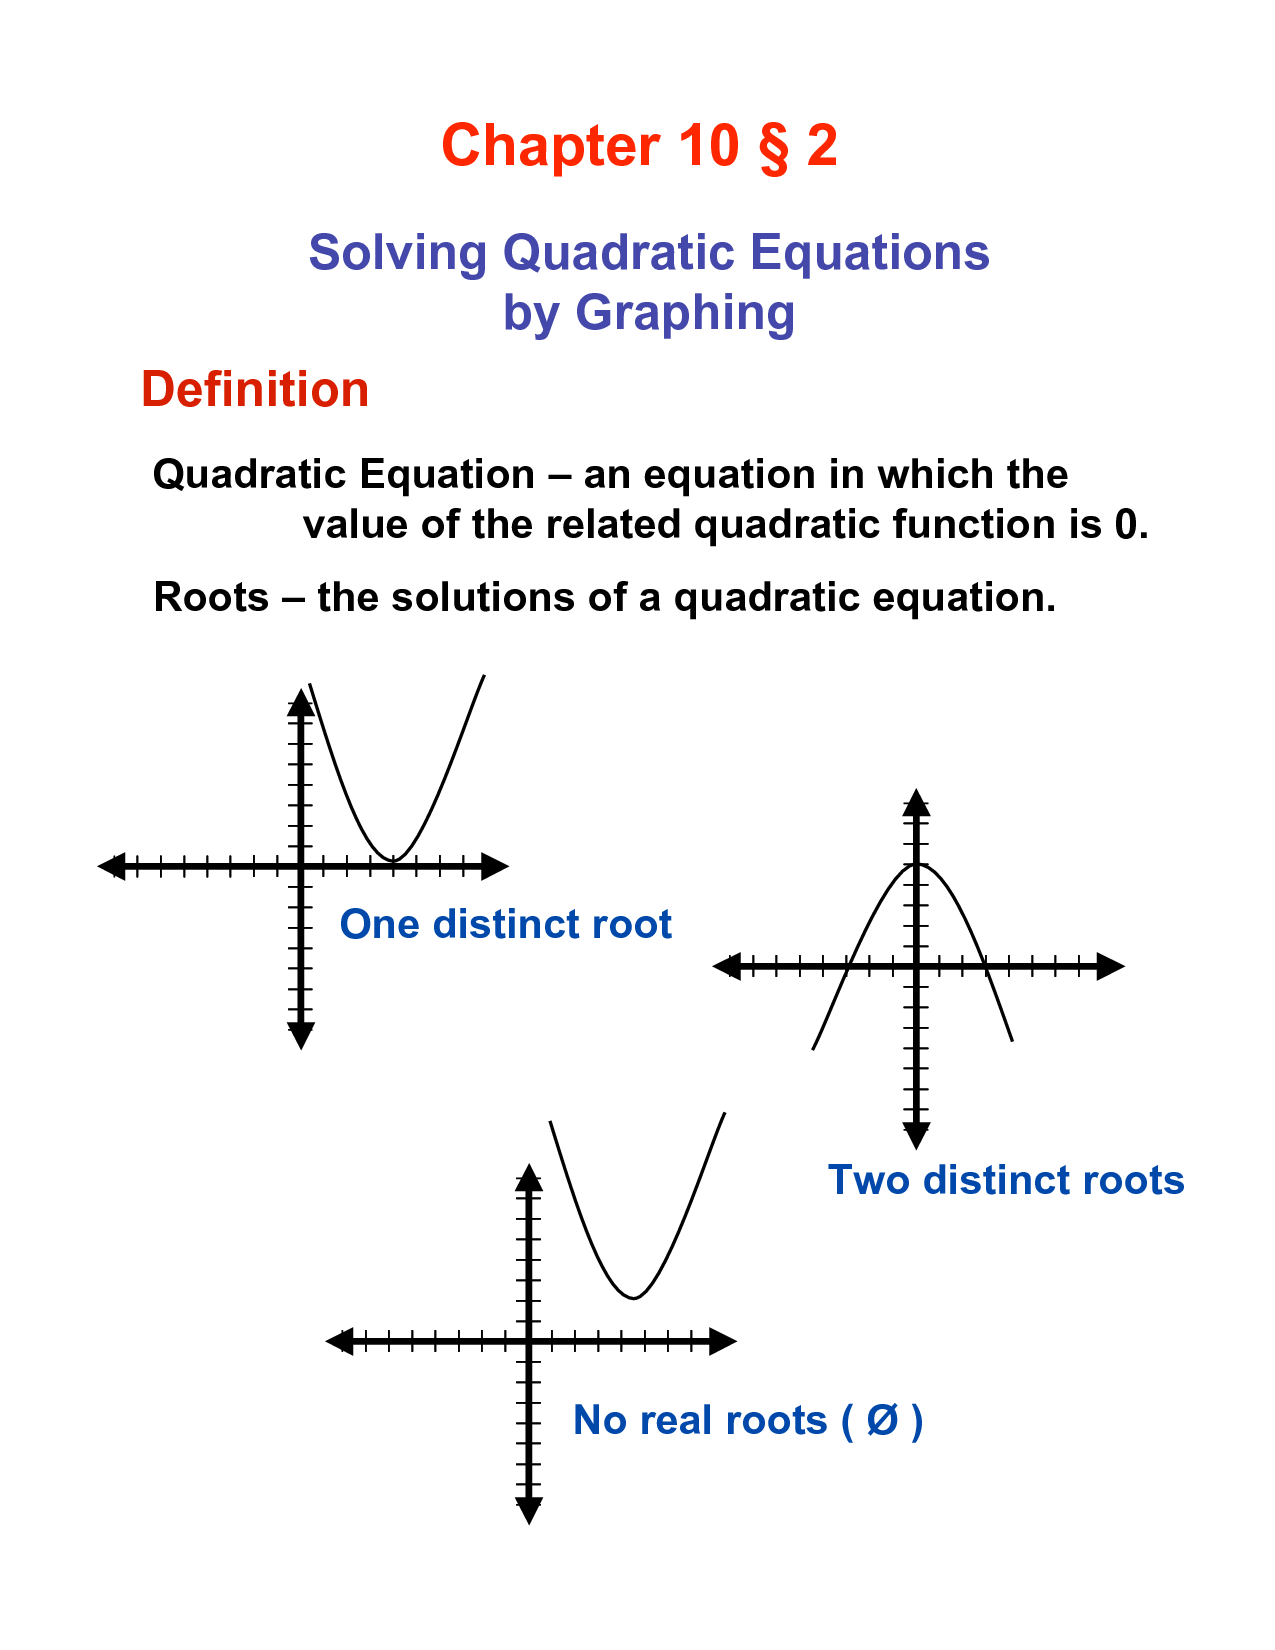 Definition And Examples Of Graphing Quadratic Equations